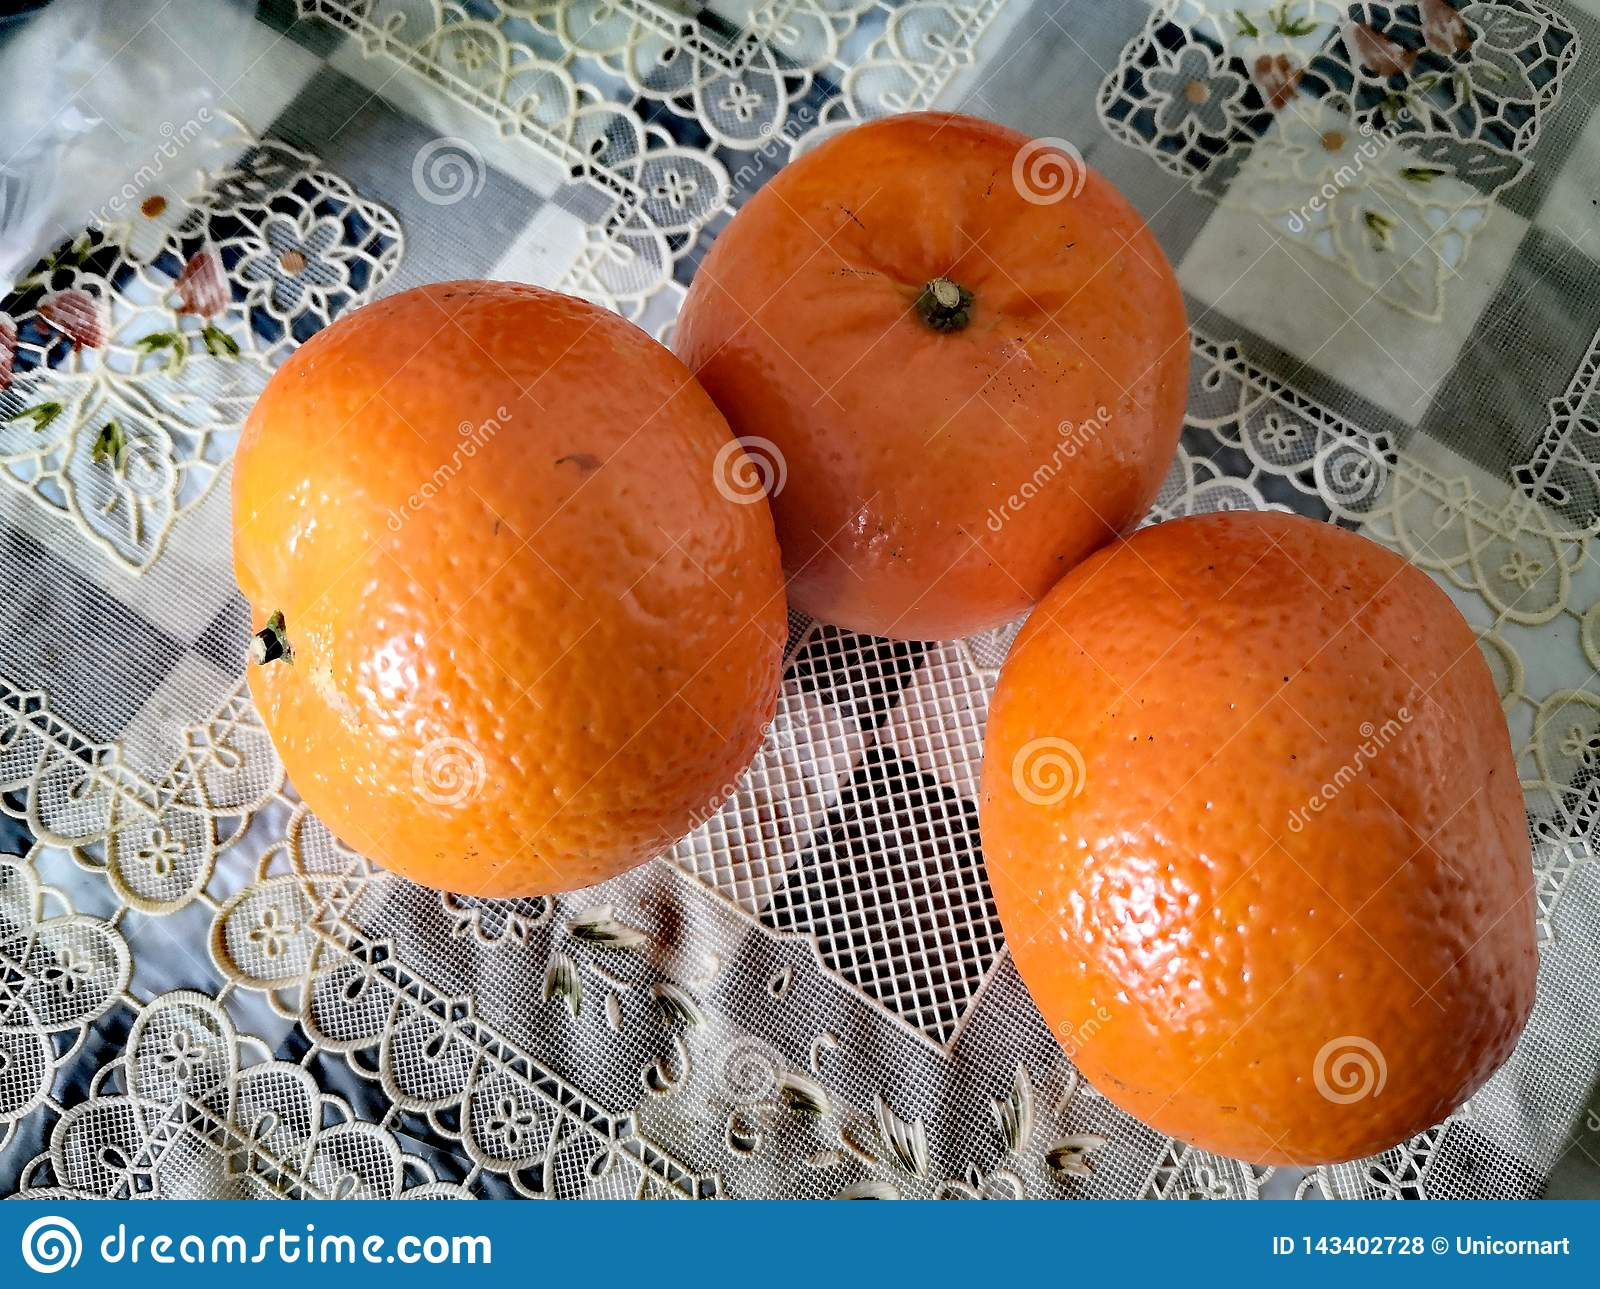 This orange is a Chinese fruit